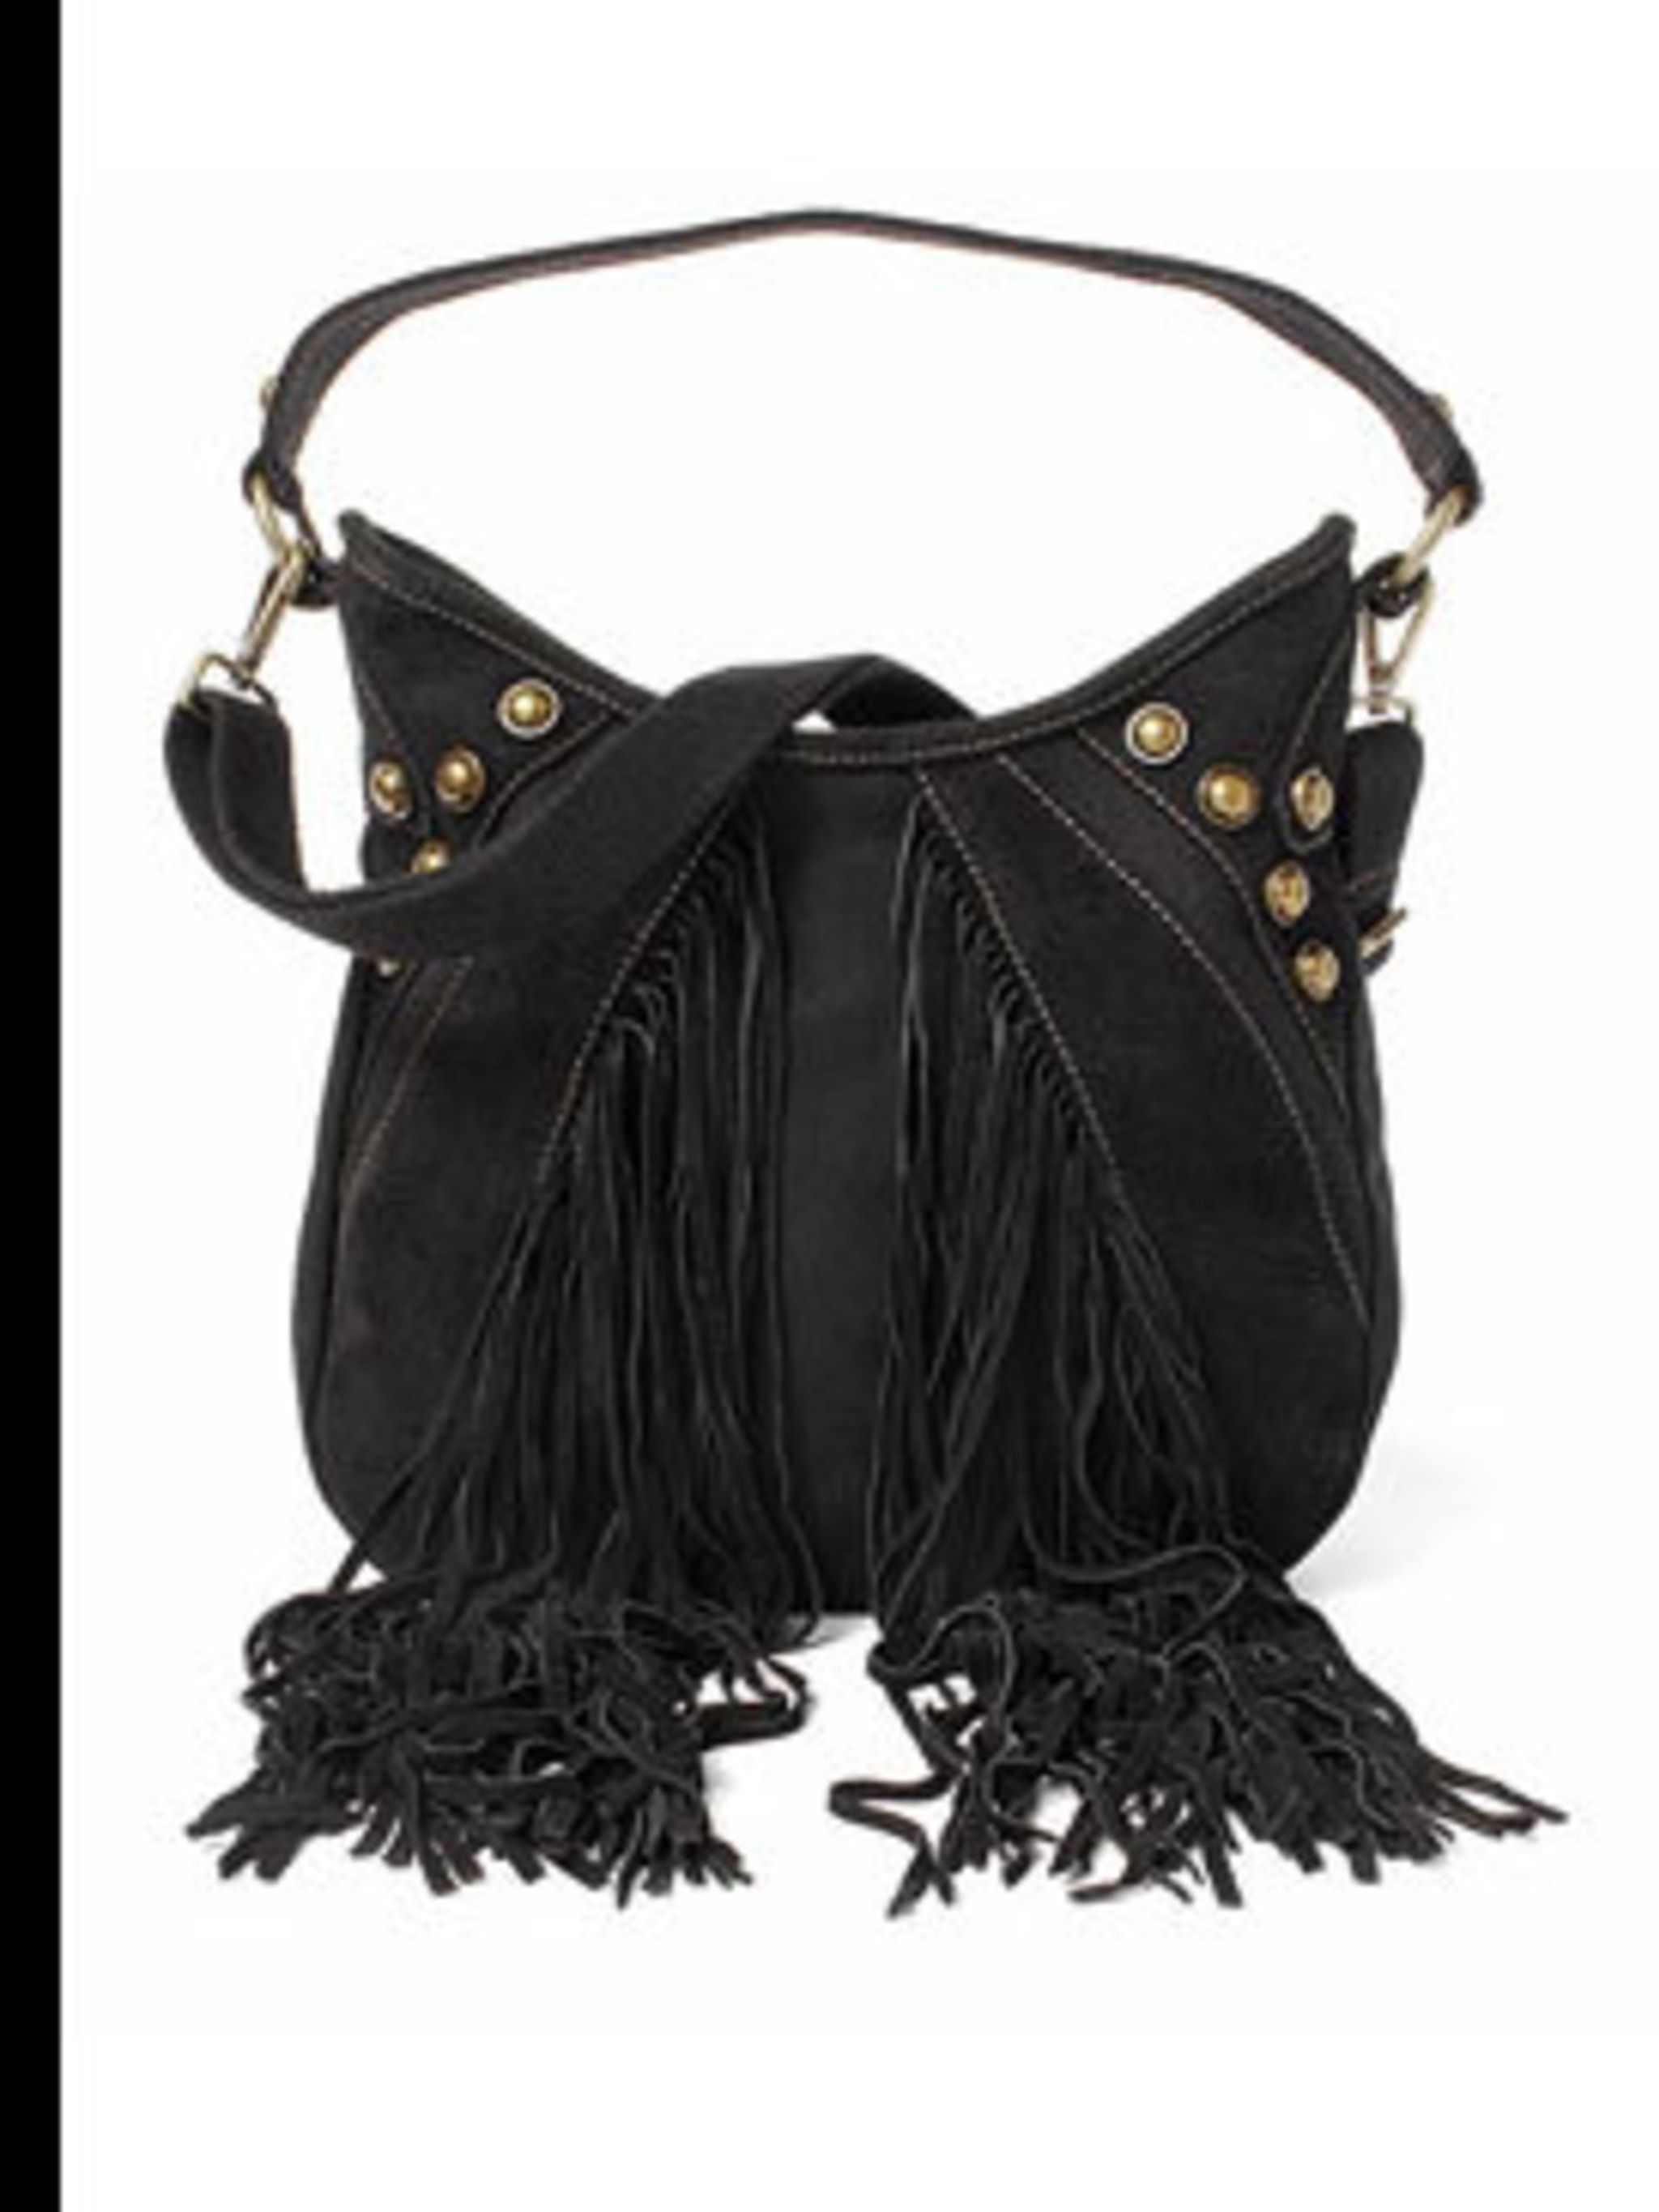 "<p>Western style shoulder bag, £29.99, by <a href=""http://www.esprit.co.uk/"">Esprit</a></p>"